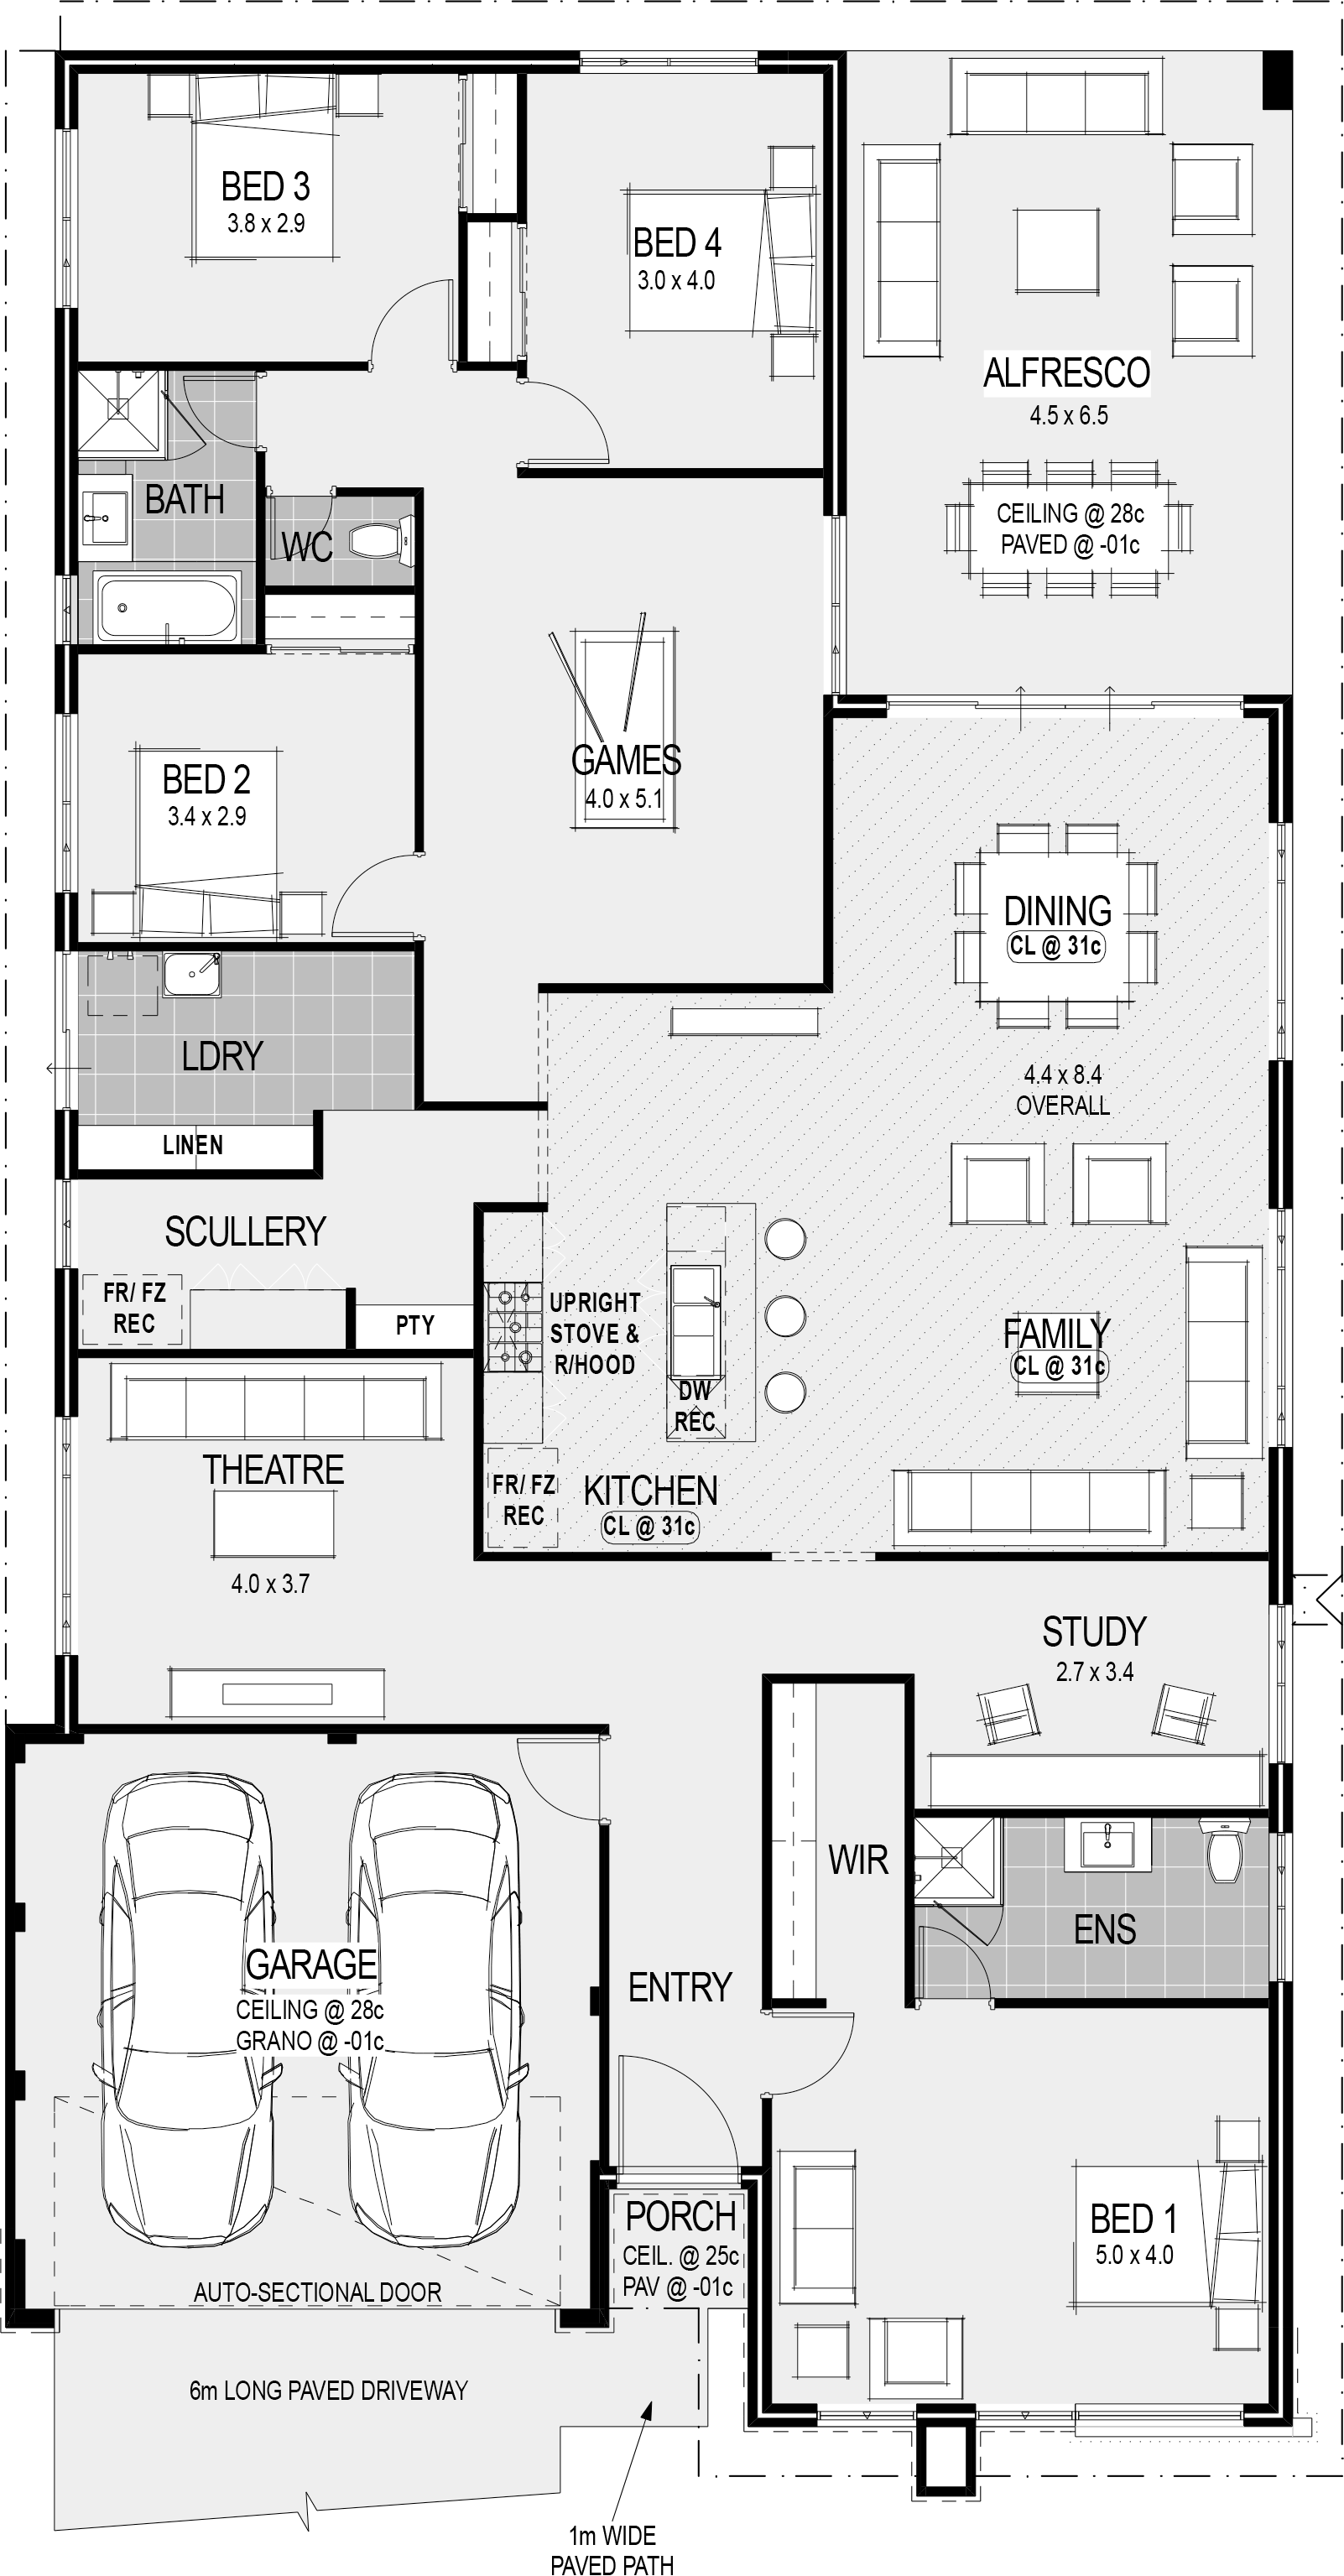 Home Designs Home Group House Design Latest House Designs House Floor Plans